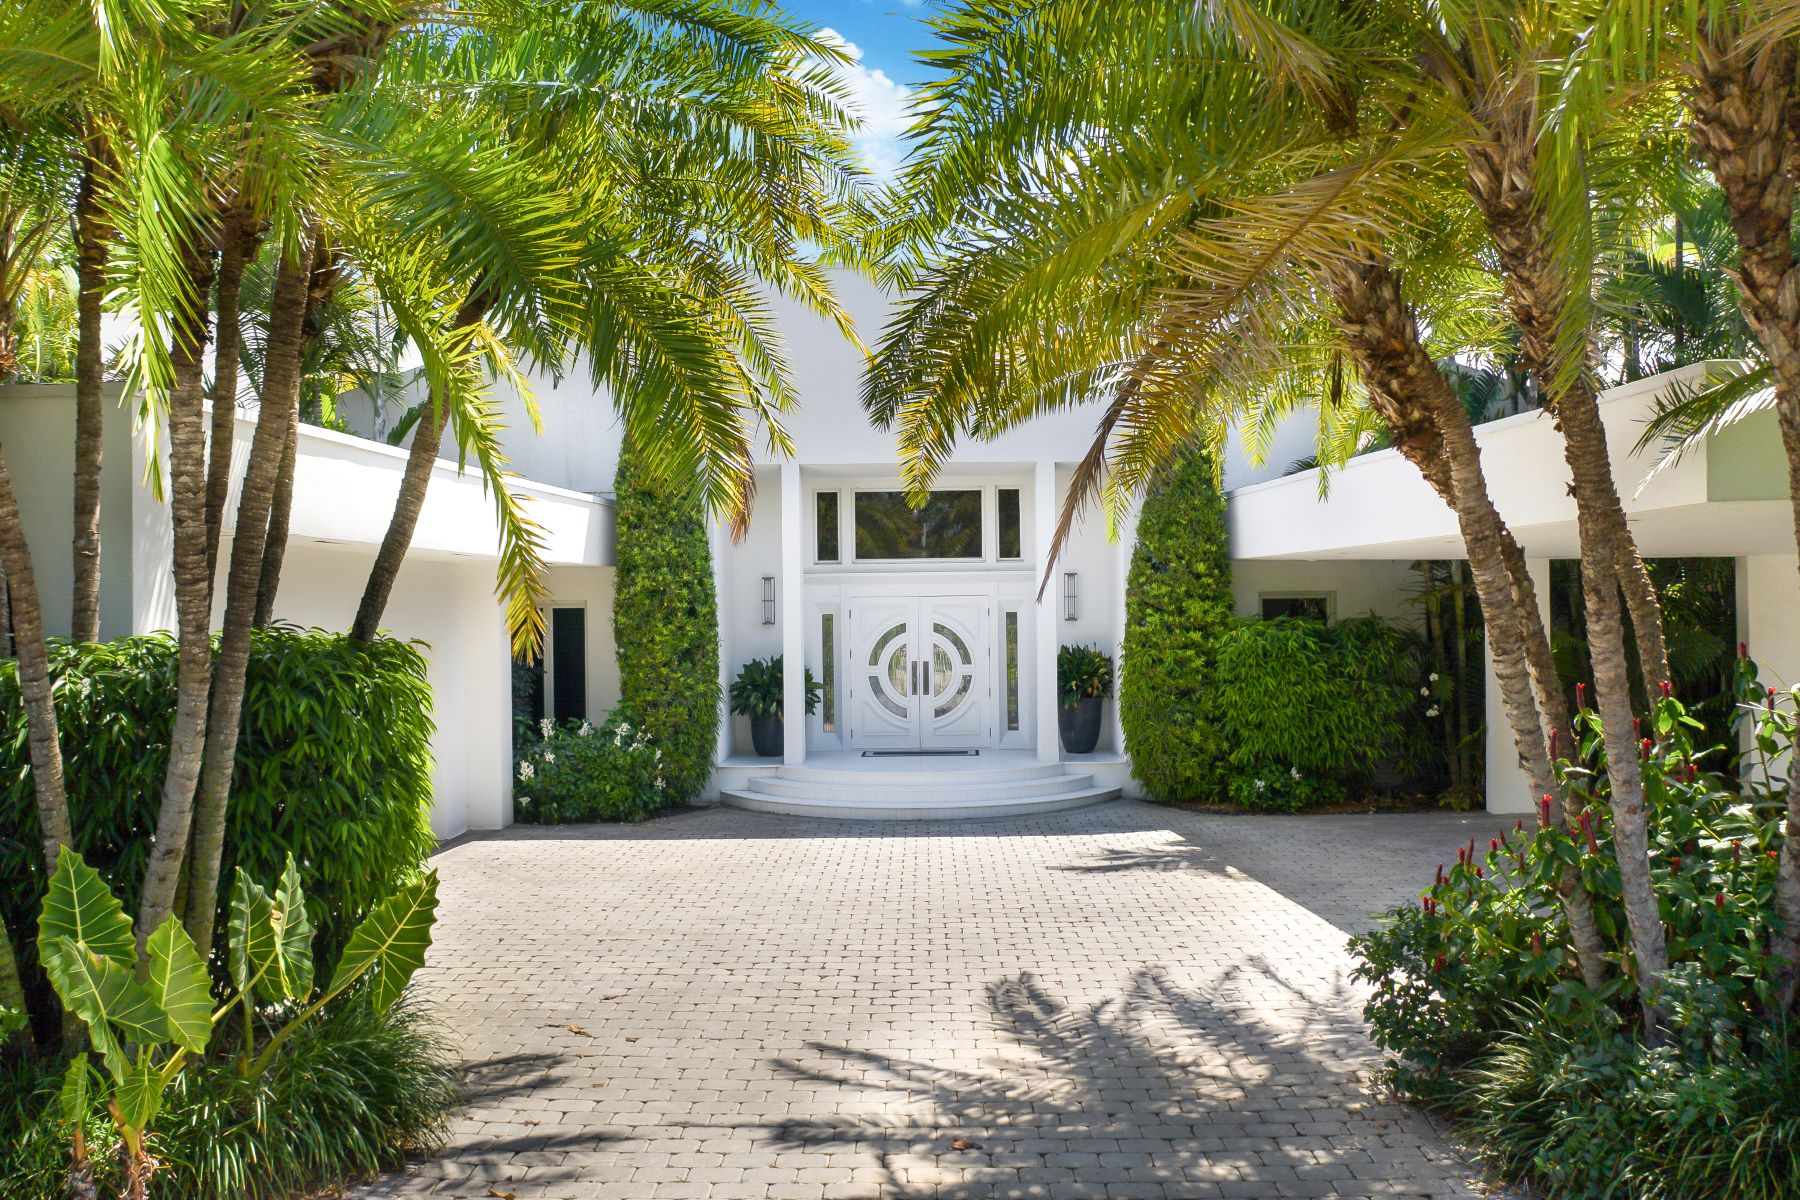 Single Family Homes for Sale at Key Biscayne, Florida 33149 United States